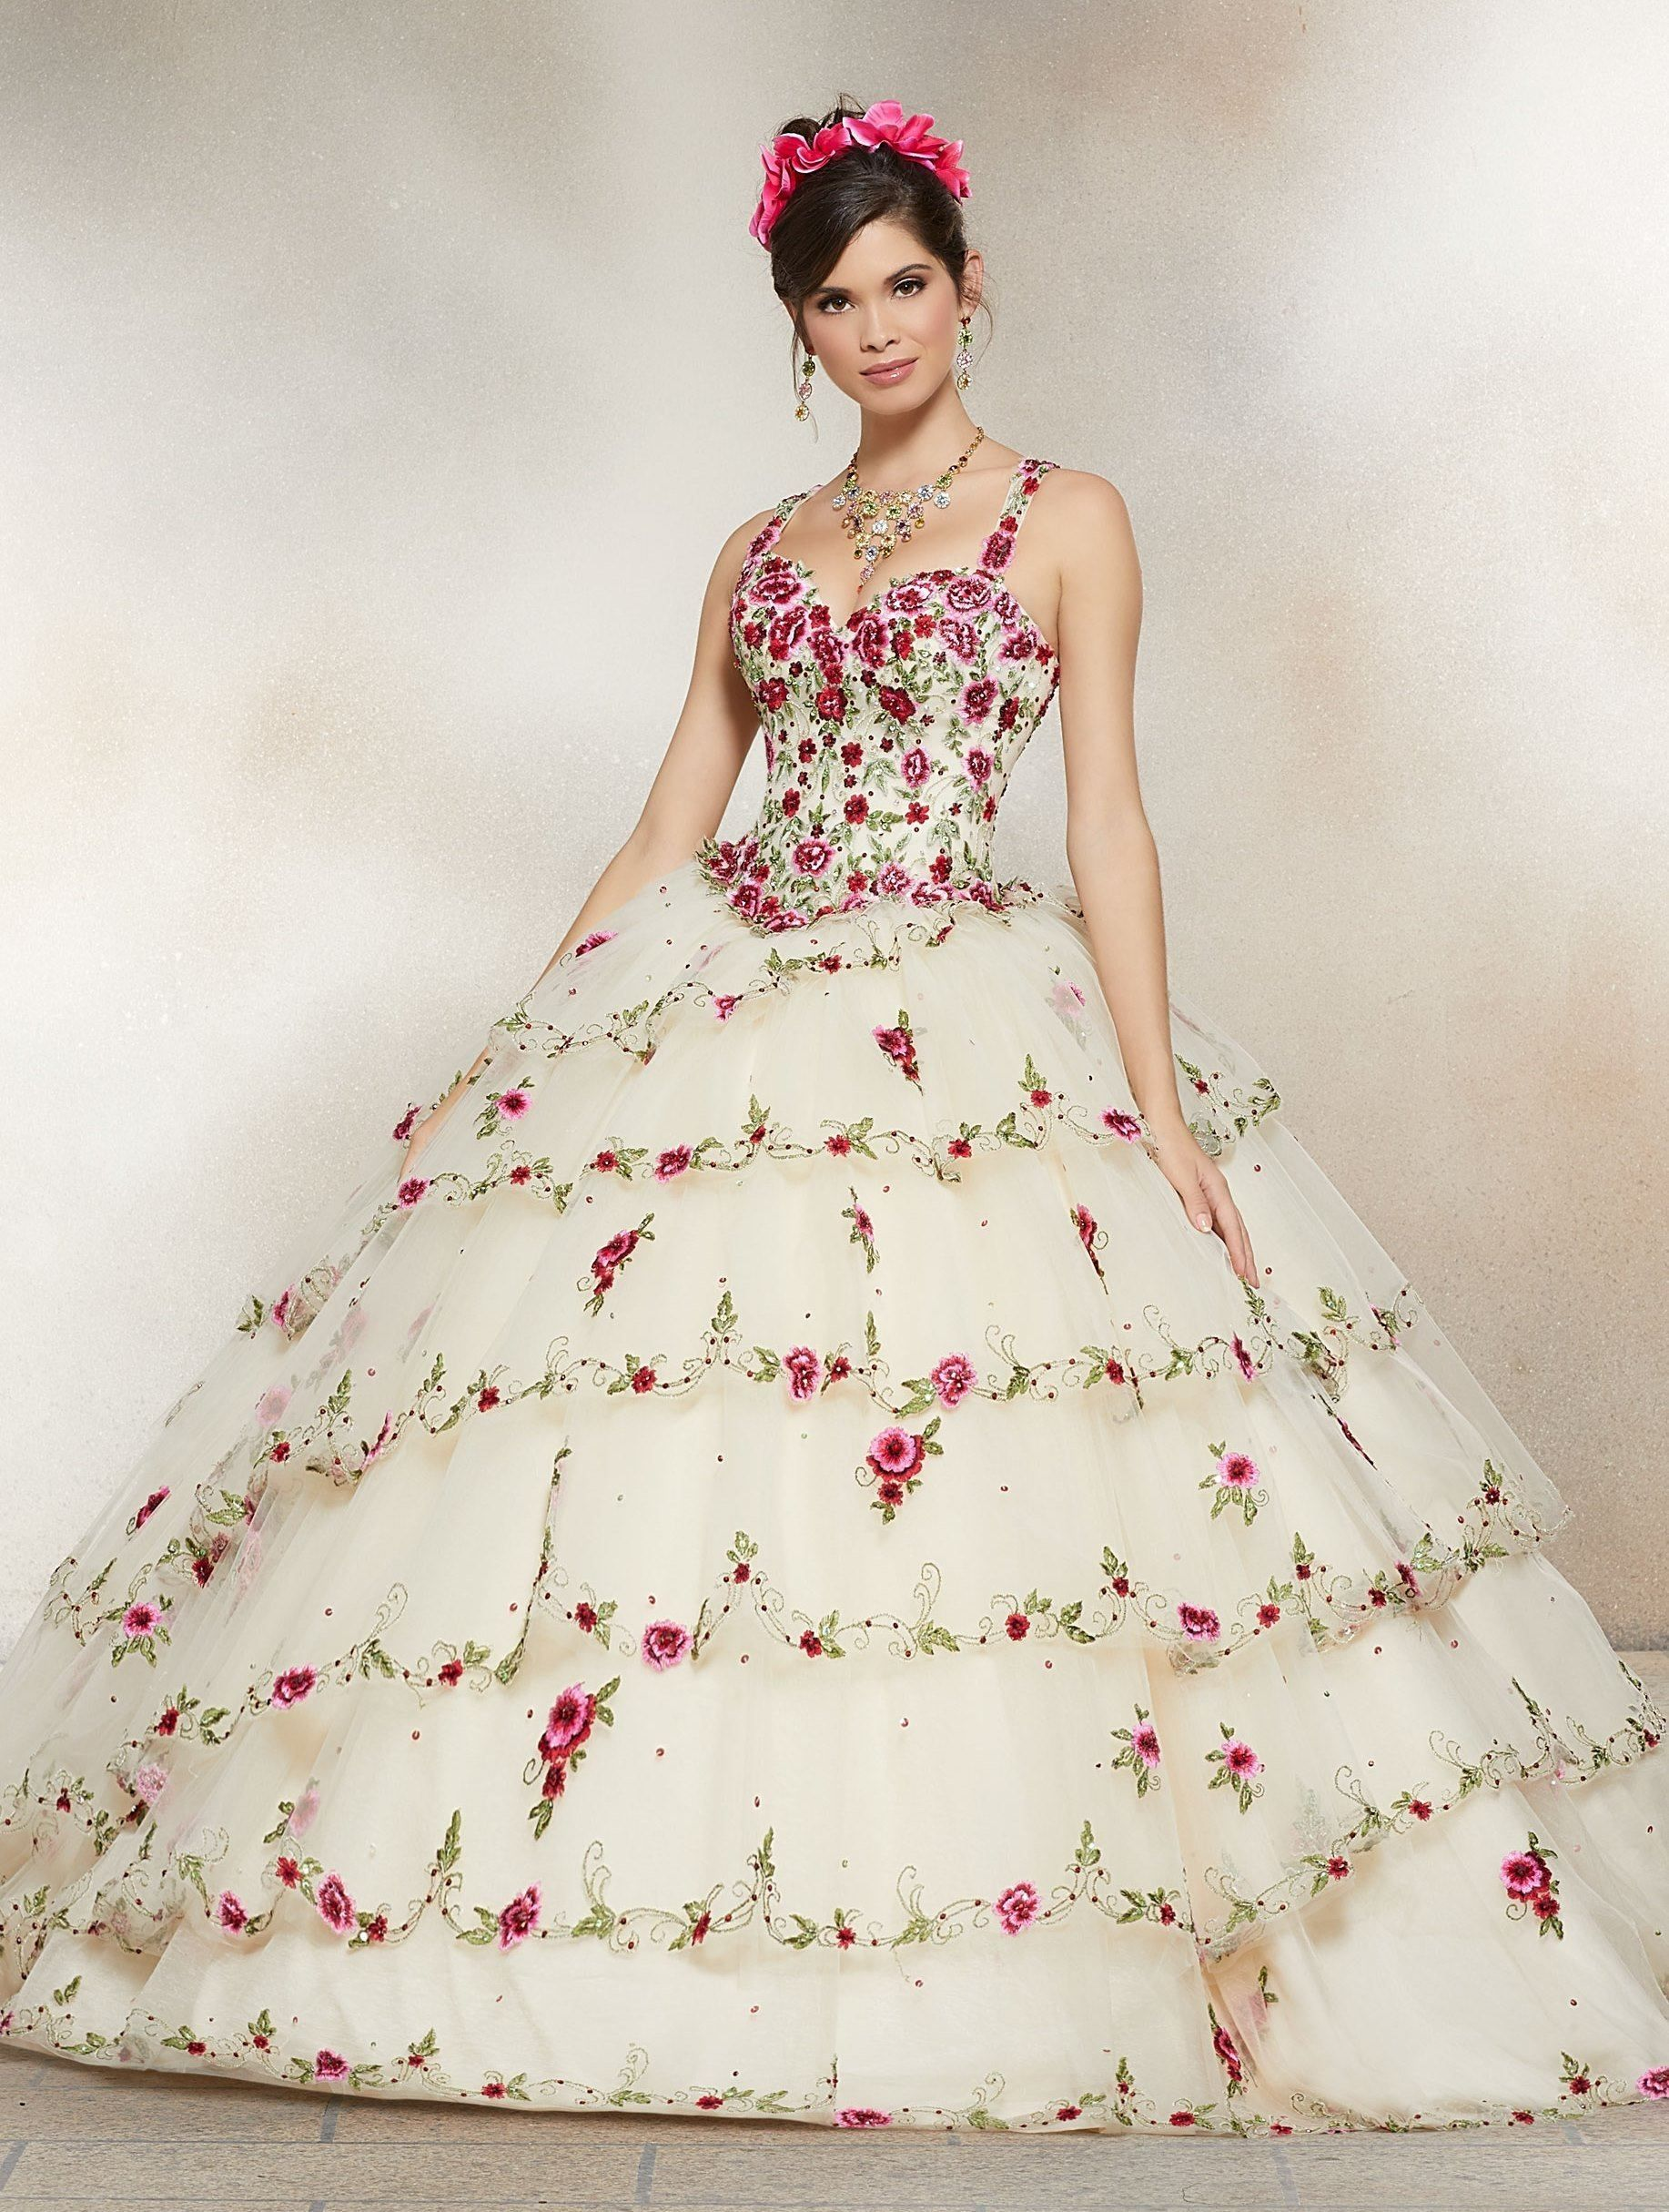 Floral Beaded Quinceanera Dress by Mori Lee Valent